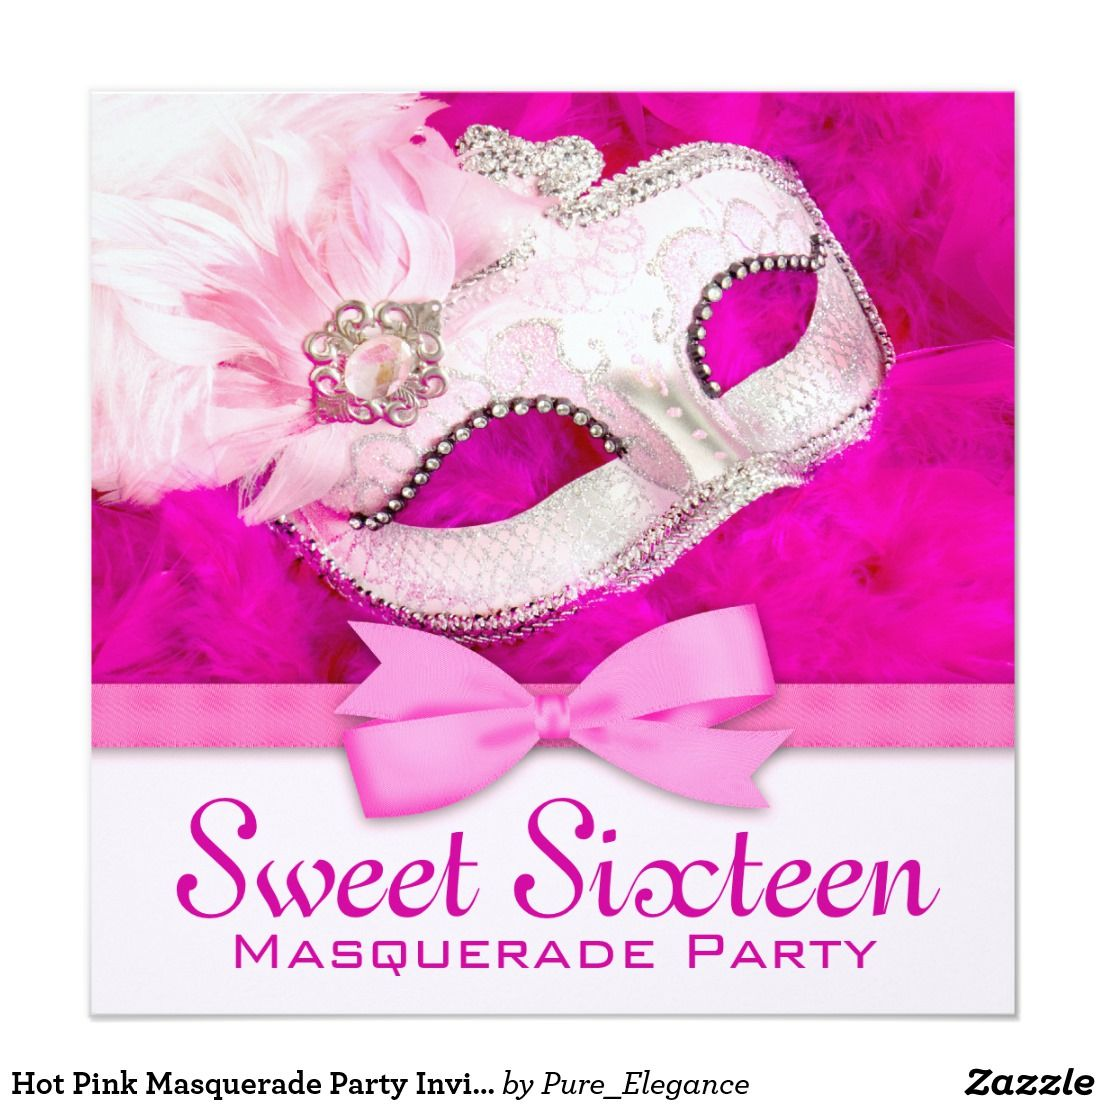 Hot Pink Masquerade Party Invitations Elegant pink feather mask ...